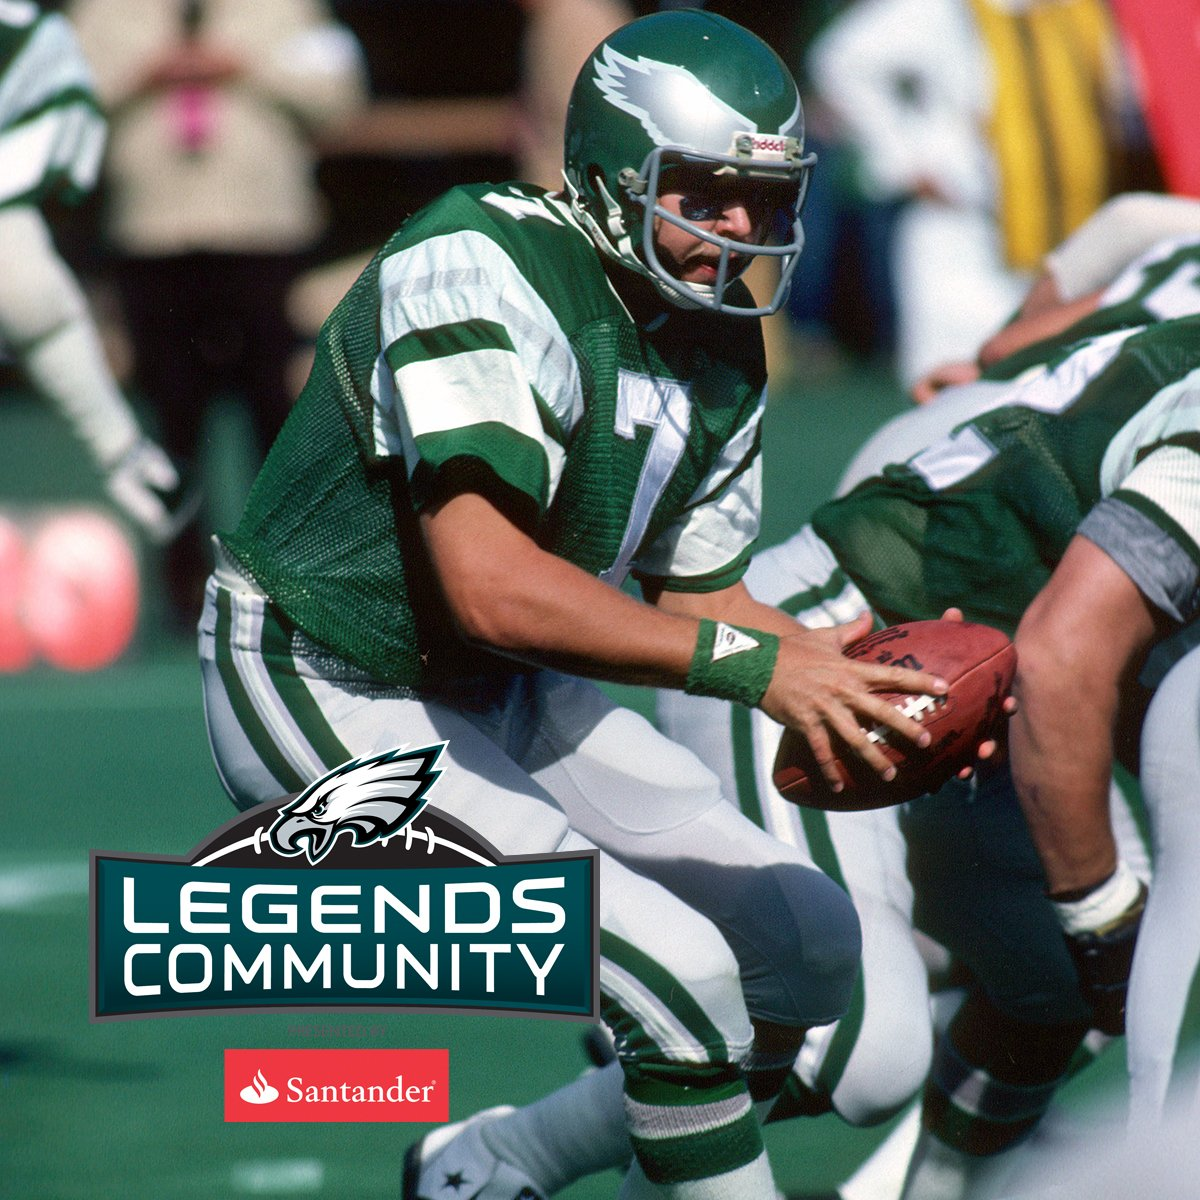 Our @SantanderBankUS Alumni Captains for #ATLvsPHI are Ron Jaworski and Jeremiah Trotter!  #FlyEaglesFly https://t.co/bxfMQtC97x